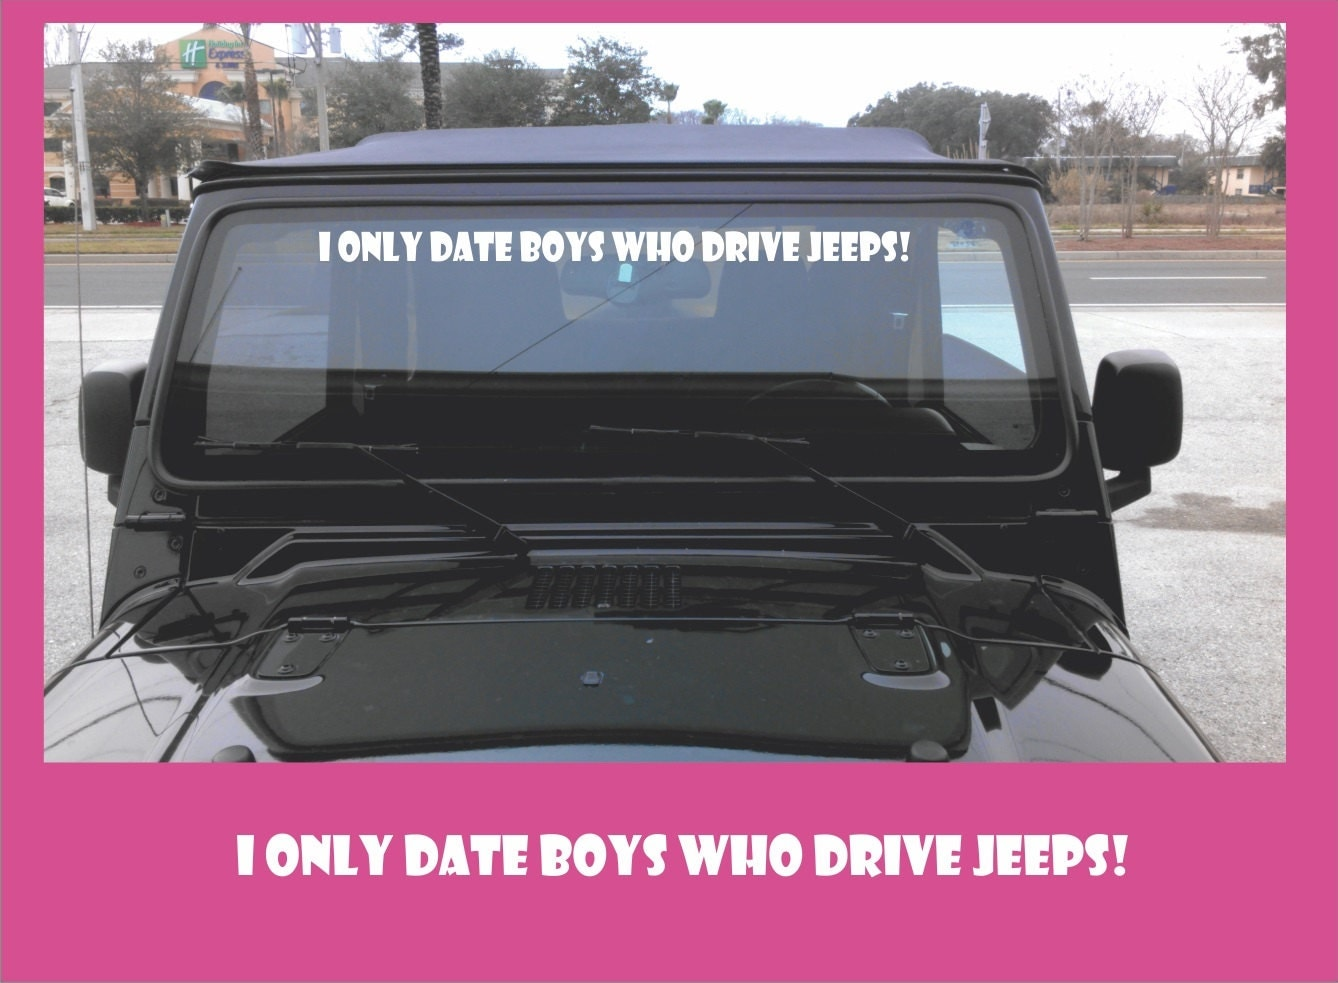 Jeep Girl Vinyl Windshield Decal Sticker From Shop317 On